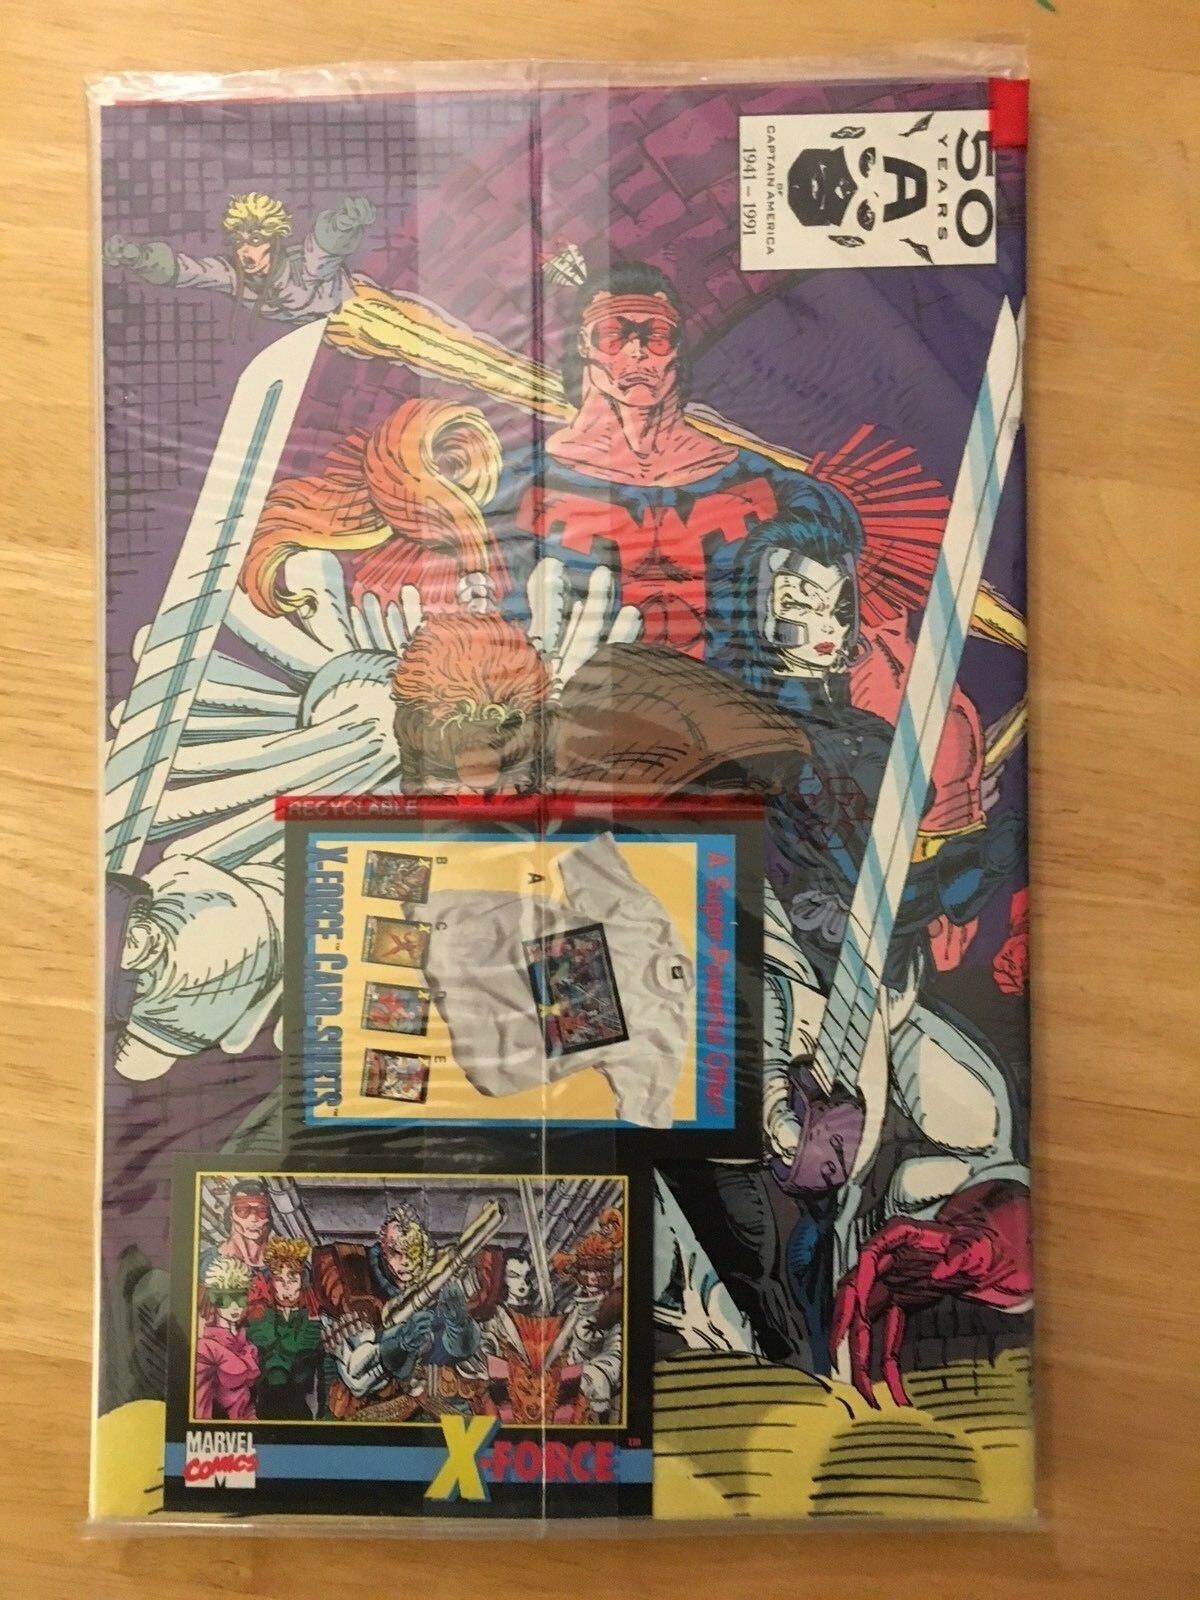 X-Force #1 1991 Marvel Comic Book NM 9.2 Condition X-Force Trading Card Bagged